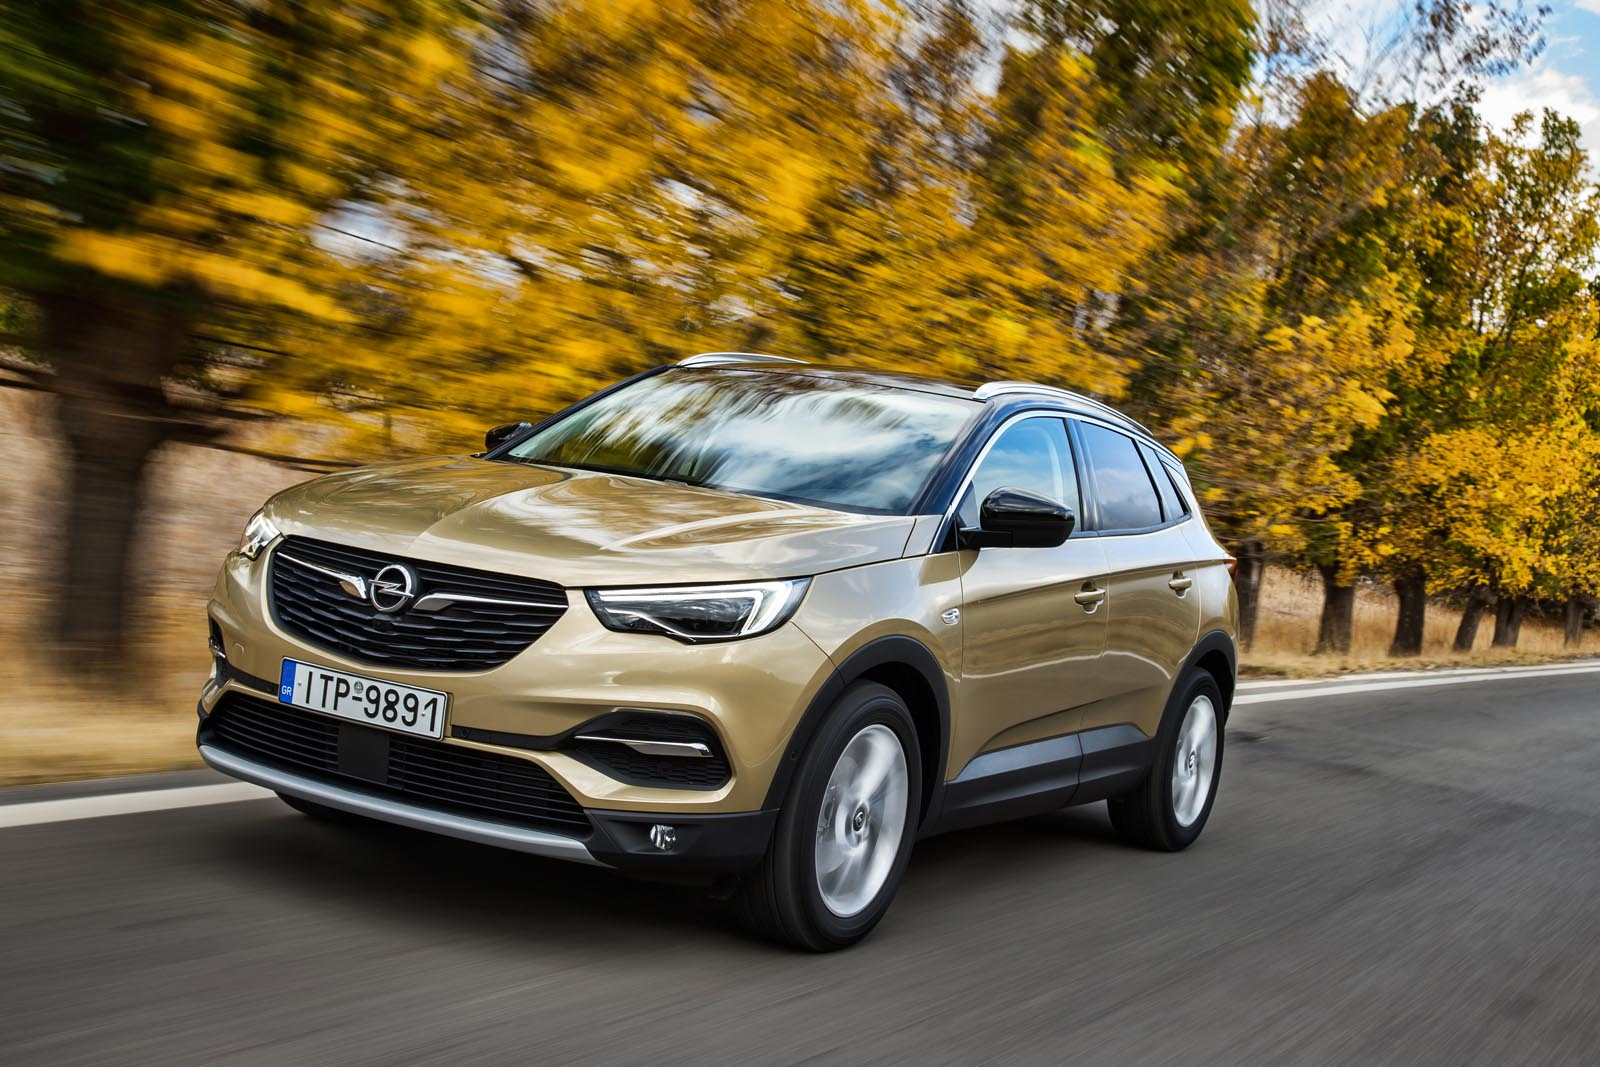 Photo of Opel Grandland X 1.6 CDTi [test drive]